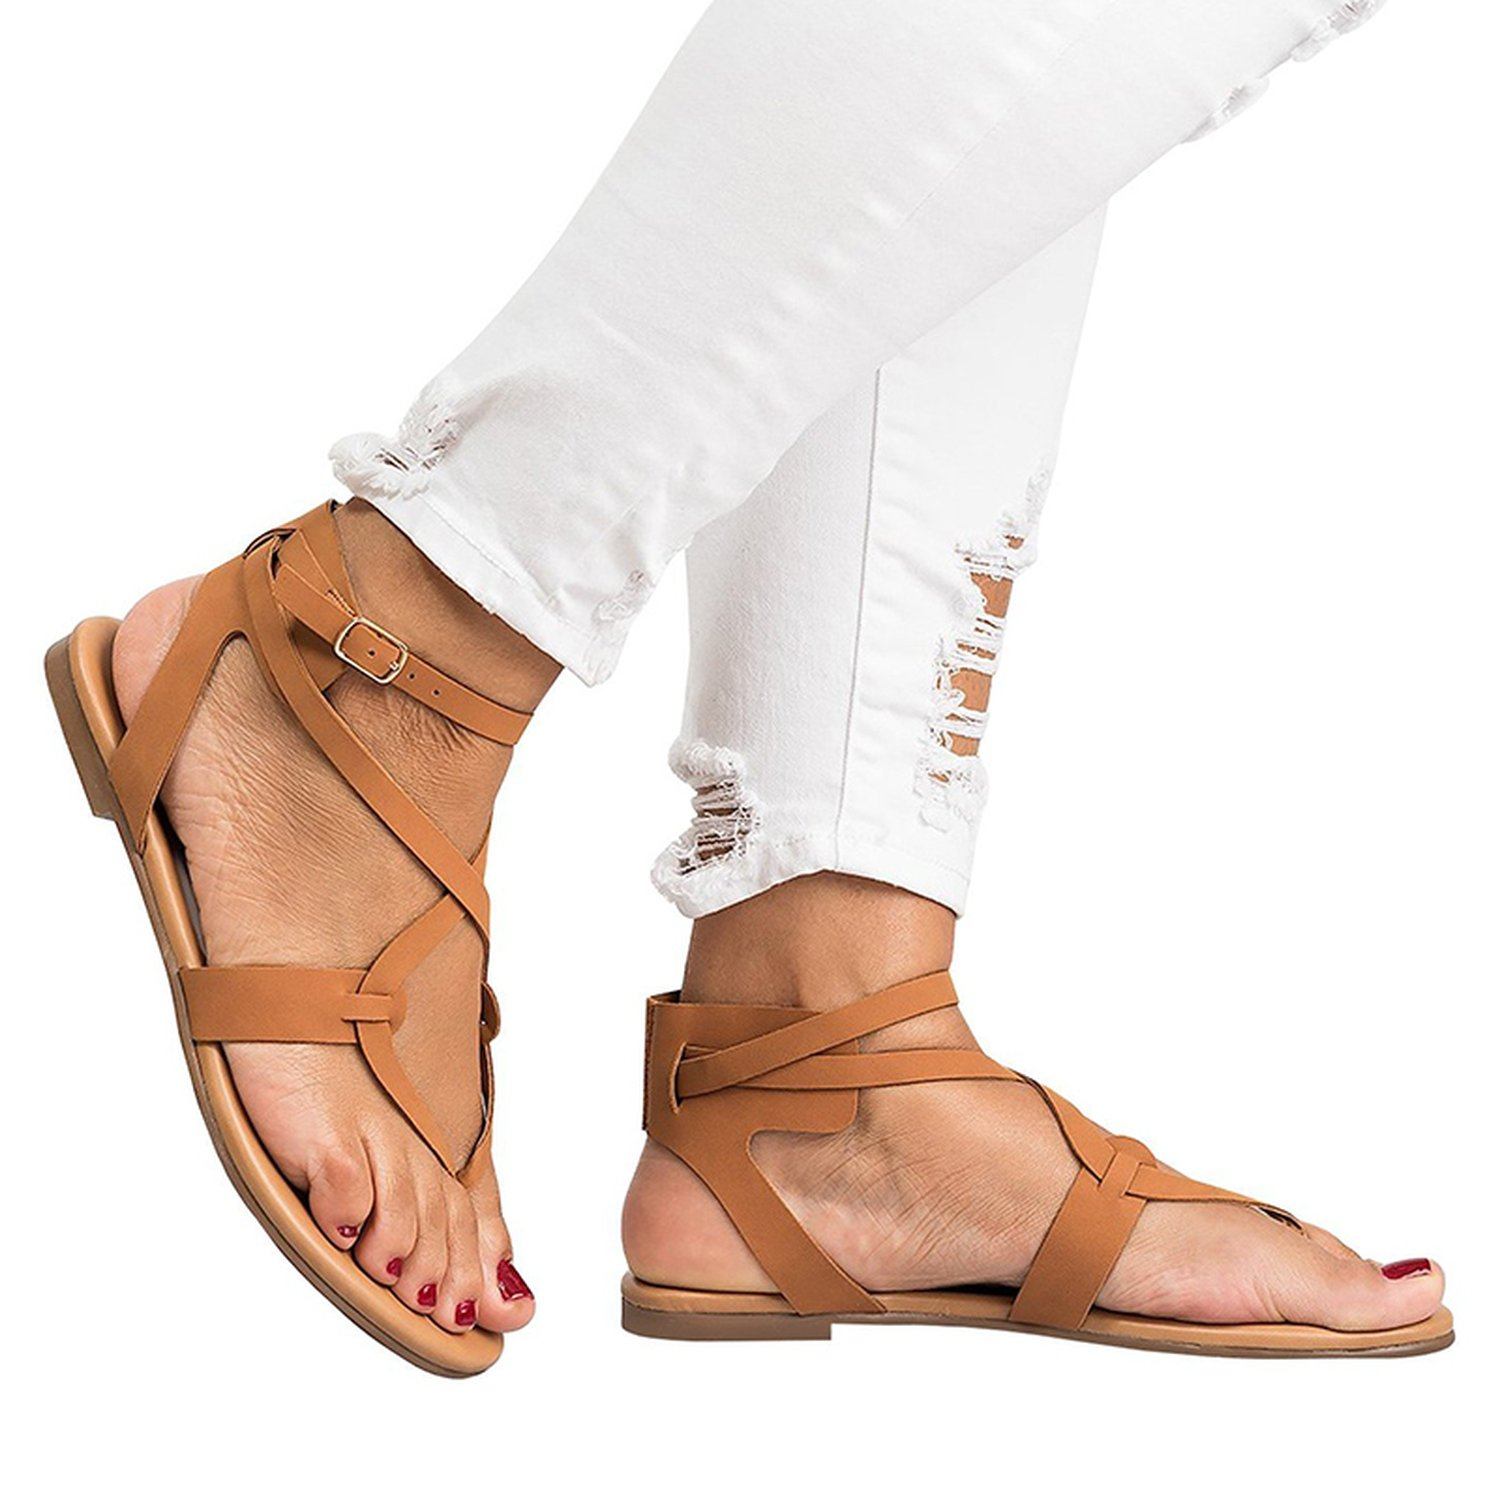 Romantic moments Arrive Women Gladiator Sandals Summer Women